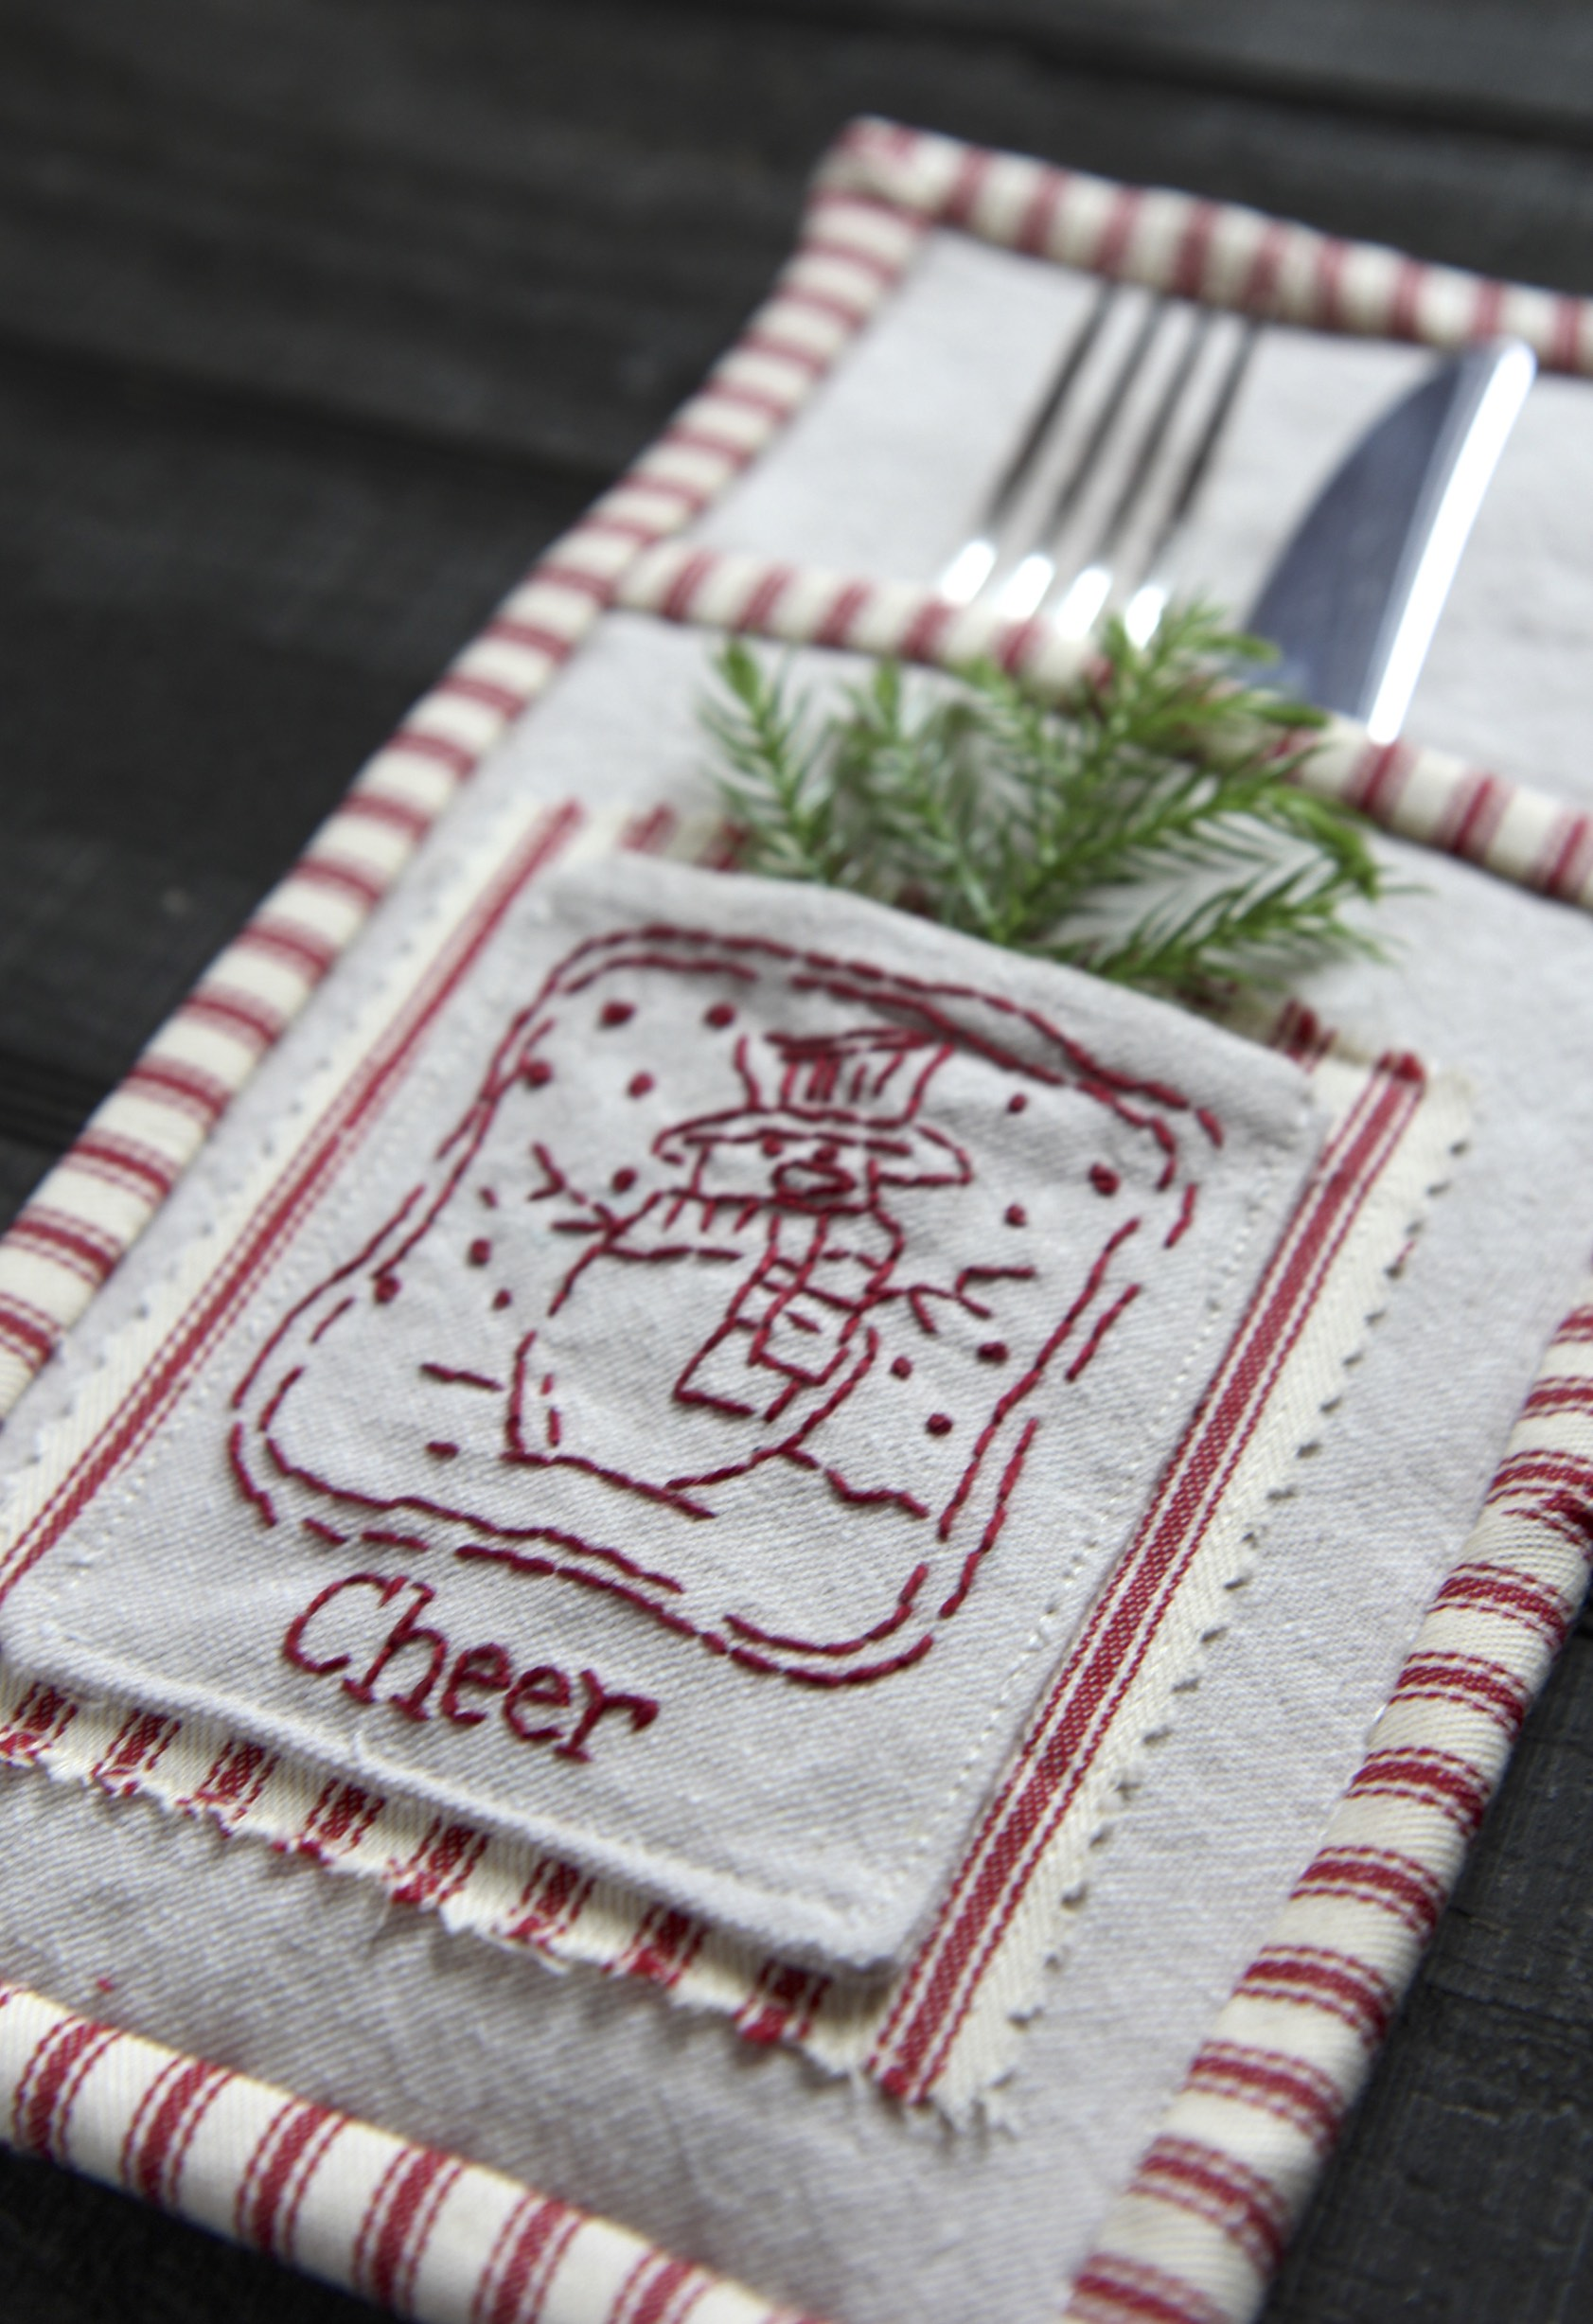 Cheer Flatware Holder